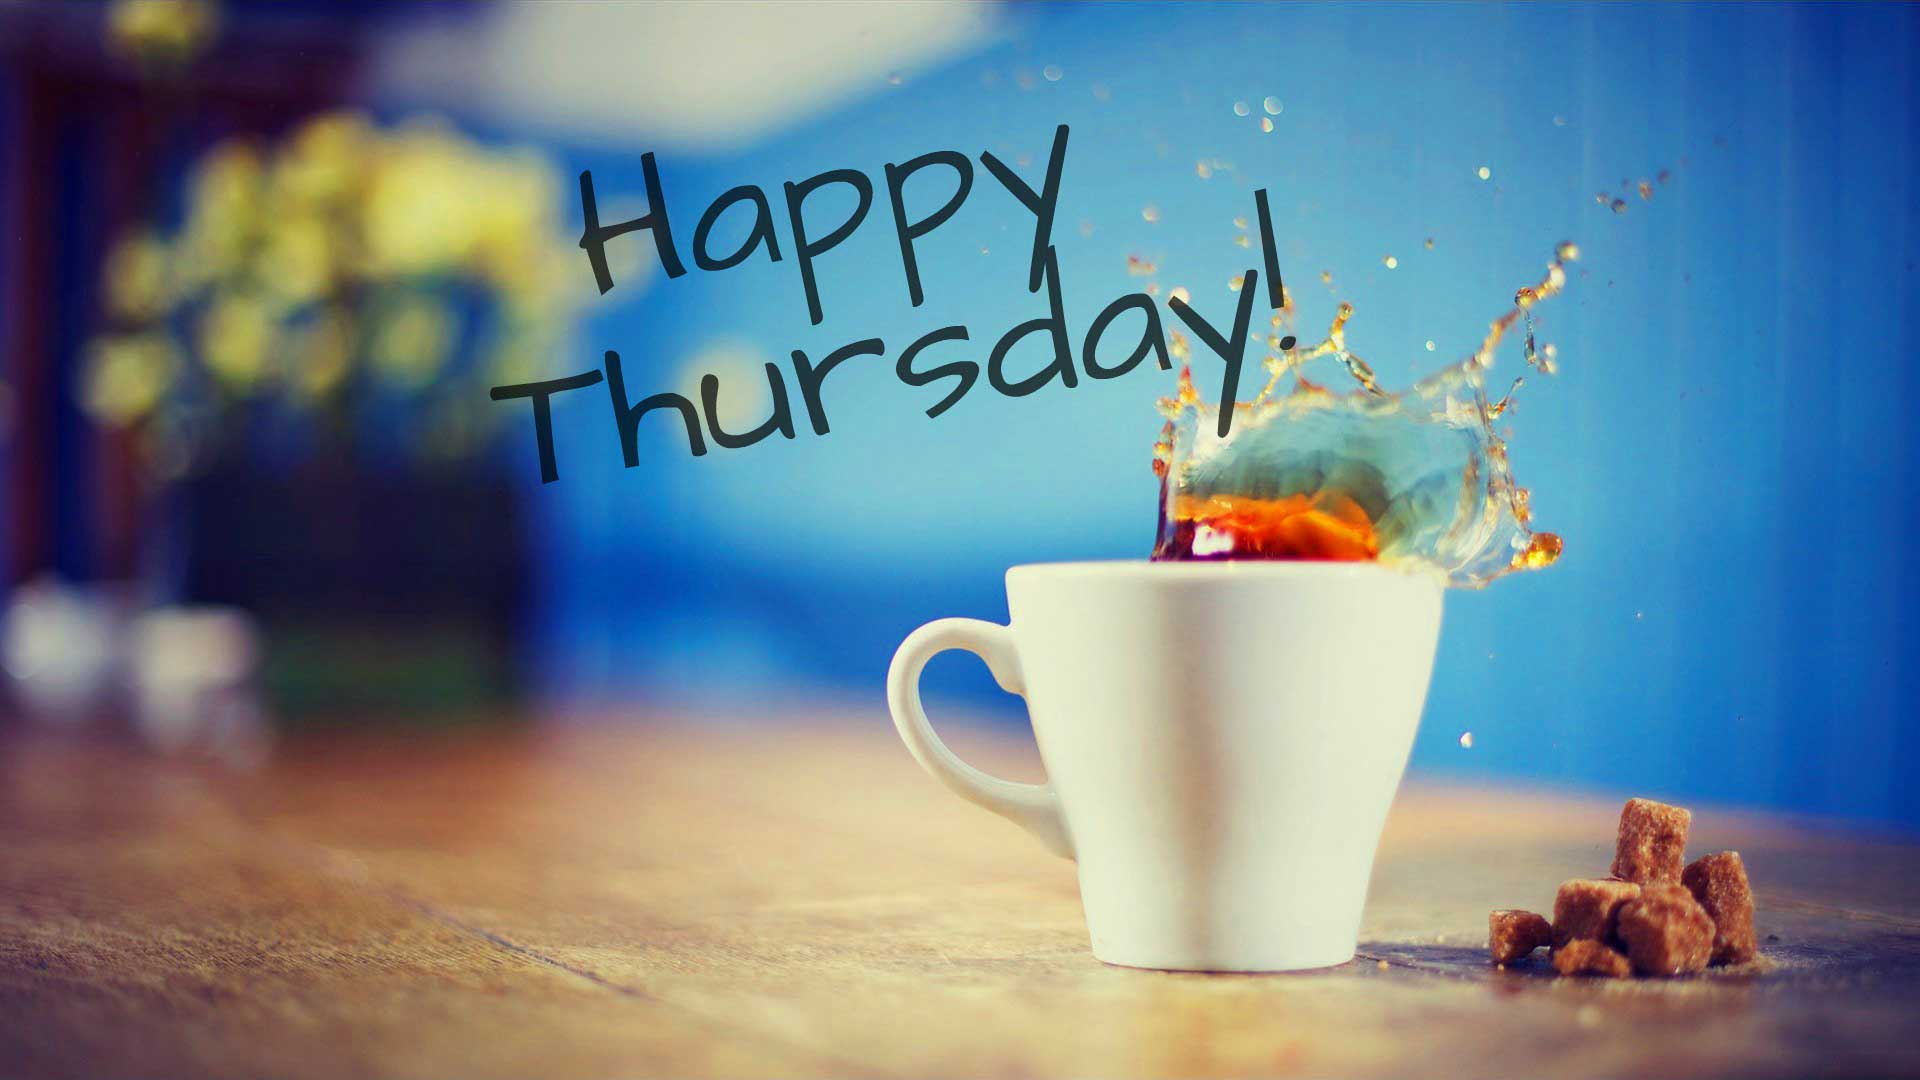 TopHappy Thursday Quotes Greetings Images Photo Pics Wallpaper Pictures Download